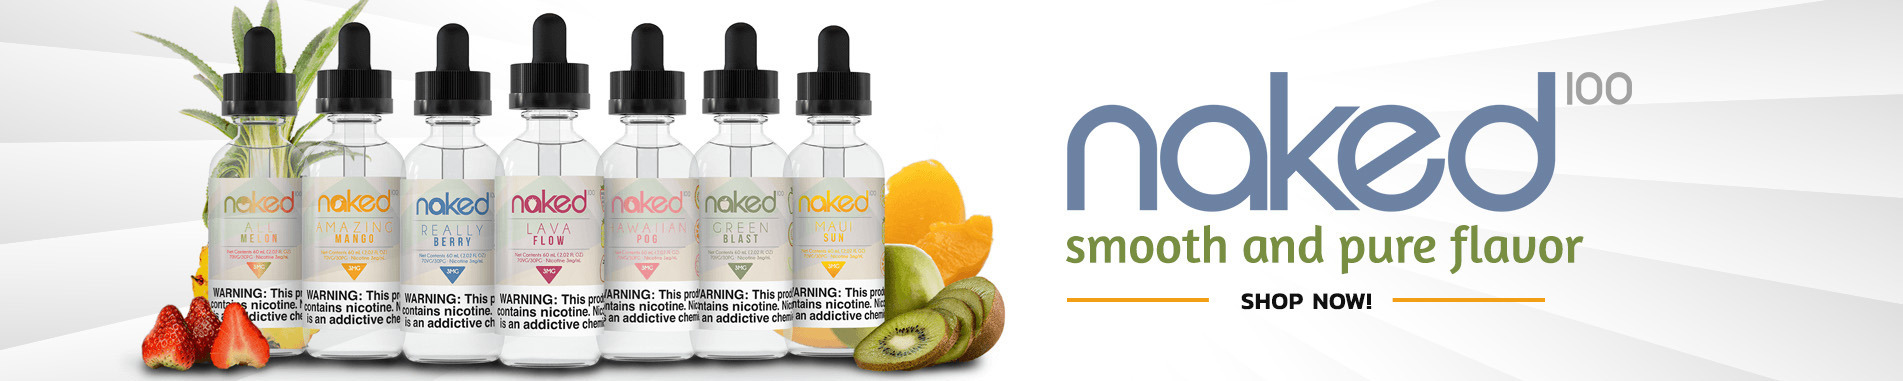 Naked 100 eJuice: Cheap Deals For Naked 100 Brand Vape Juice